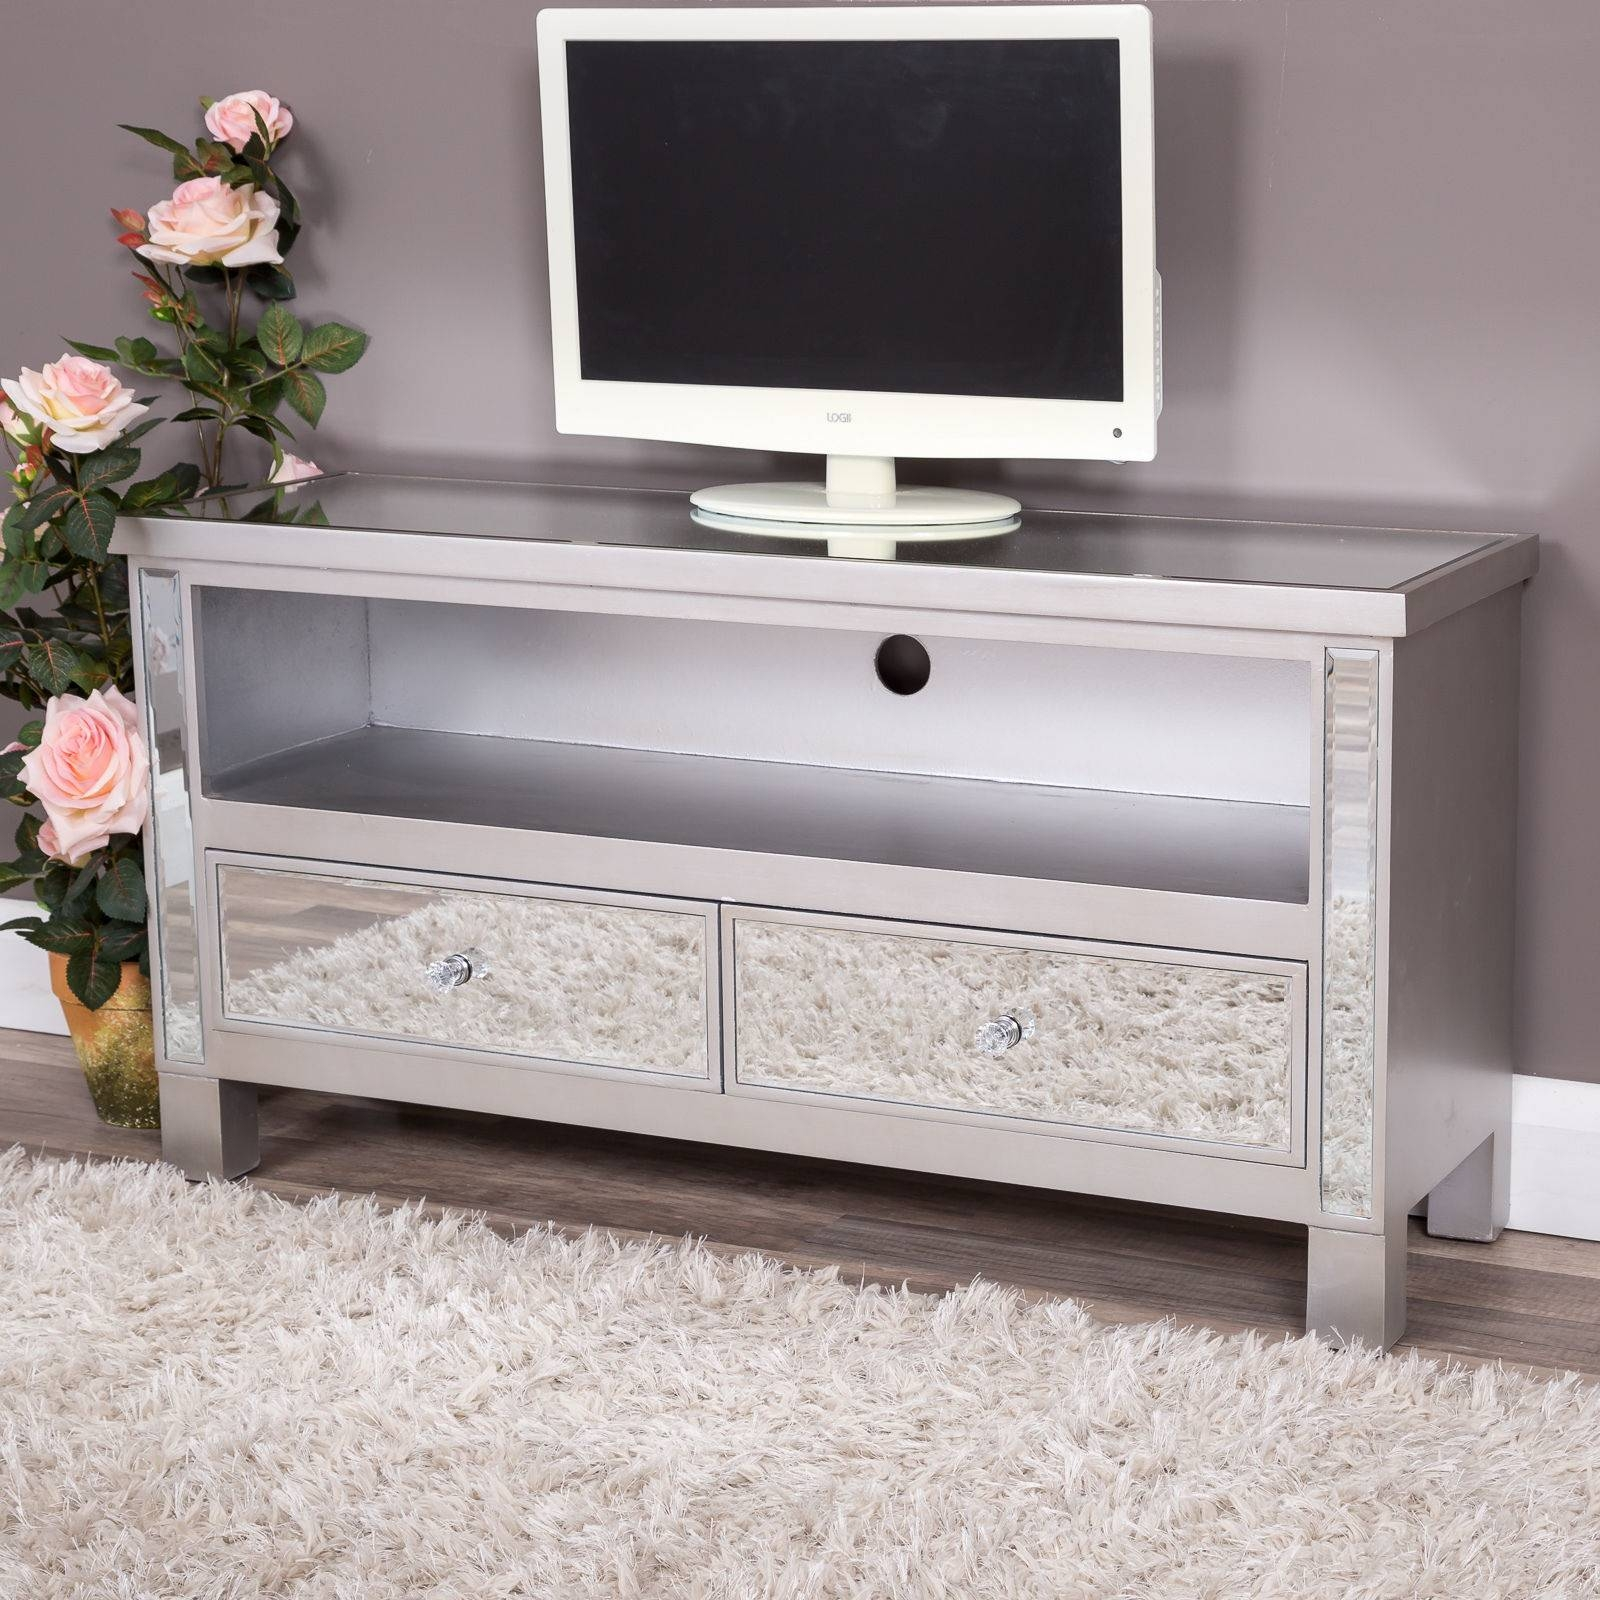 Silver Mirrored Glass 2 Drawer Tv Entertainment Cabinet Stand Unit pertaining to Mirrored Tv Cabinets (Image 11 of 15)